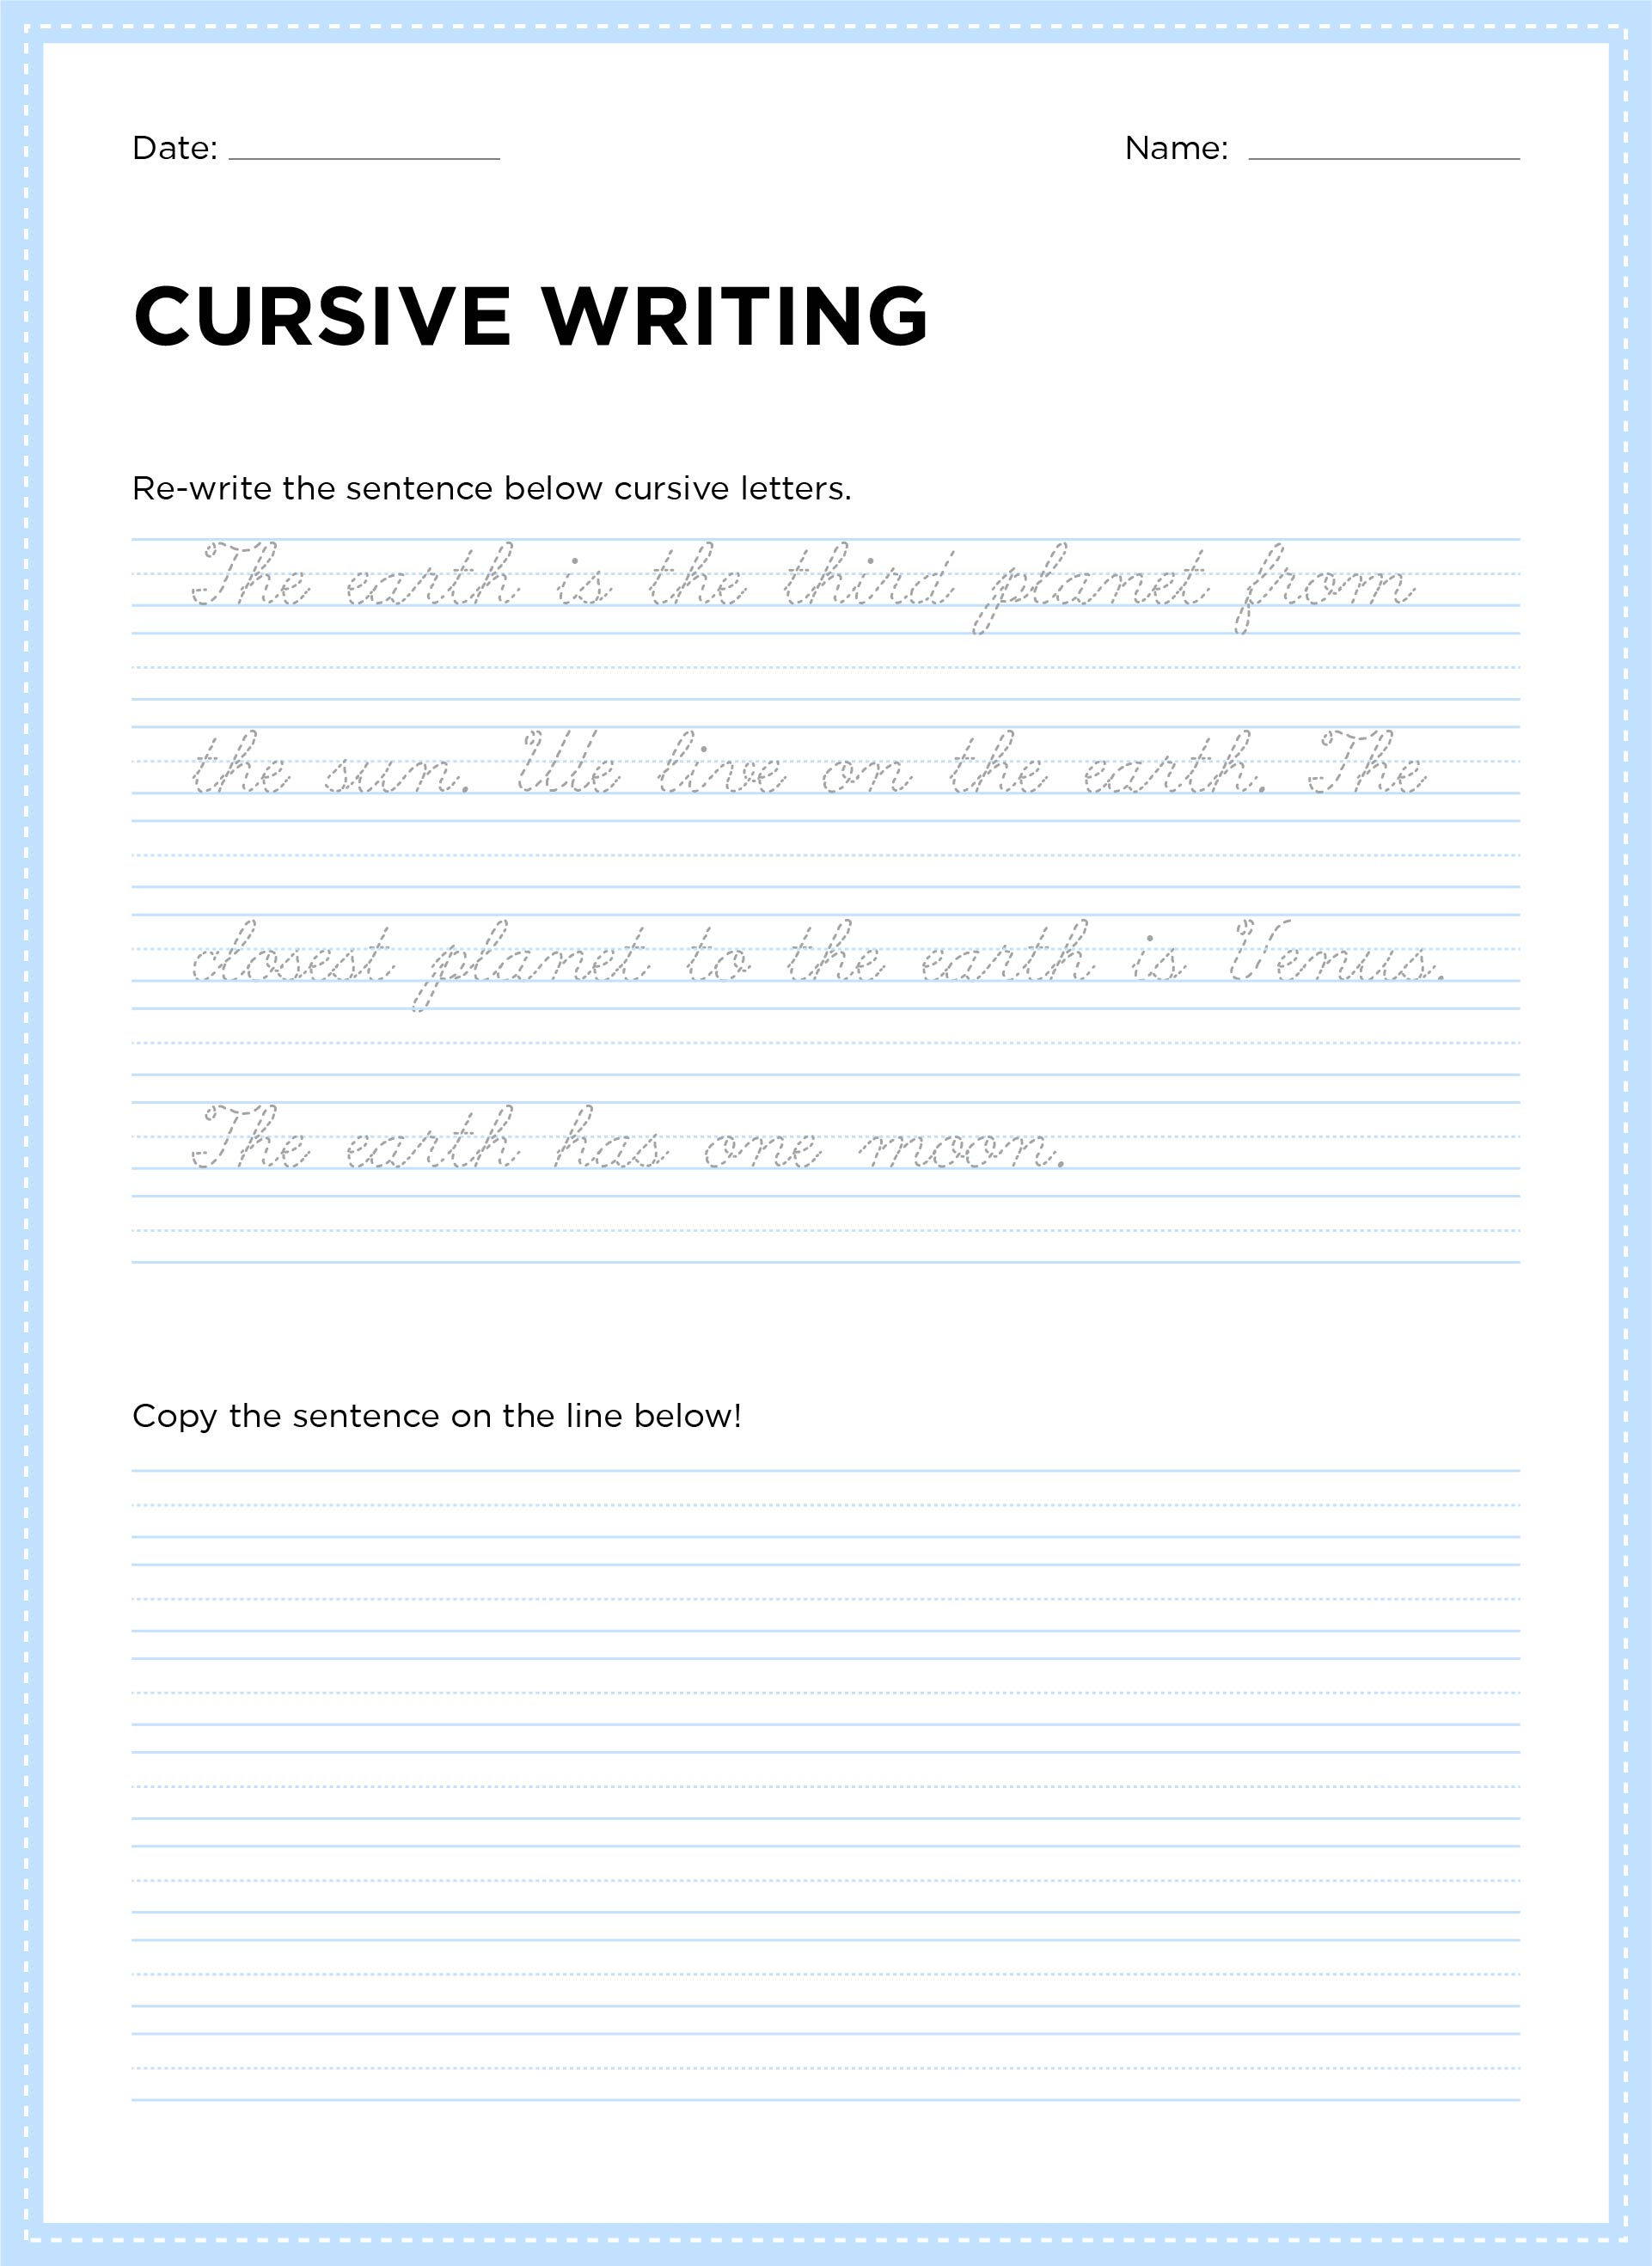 zaner bloser writing Letter school cursive uppercase-zaner bloser and zb style l a letter school cursive uppercase-zaner bloser and zb style l writing a to z l preview.